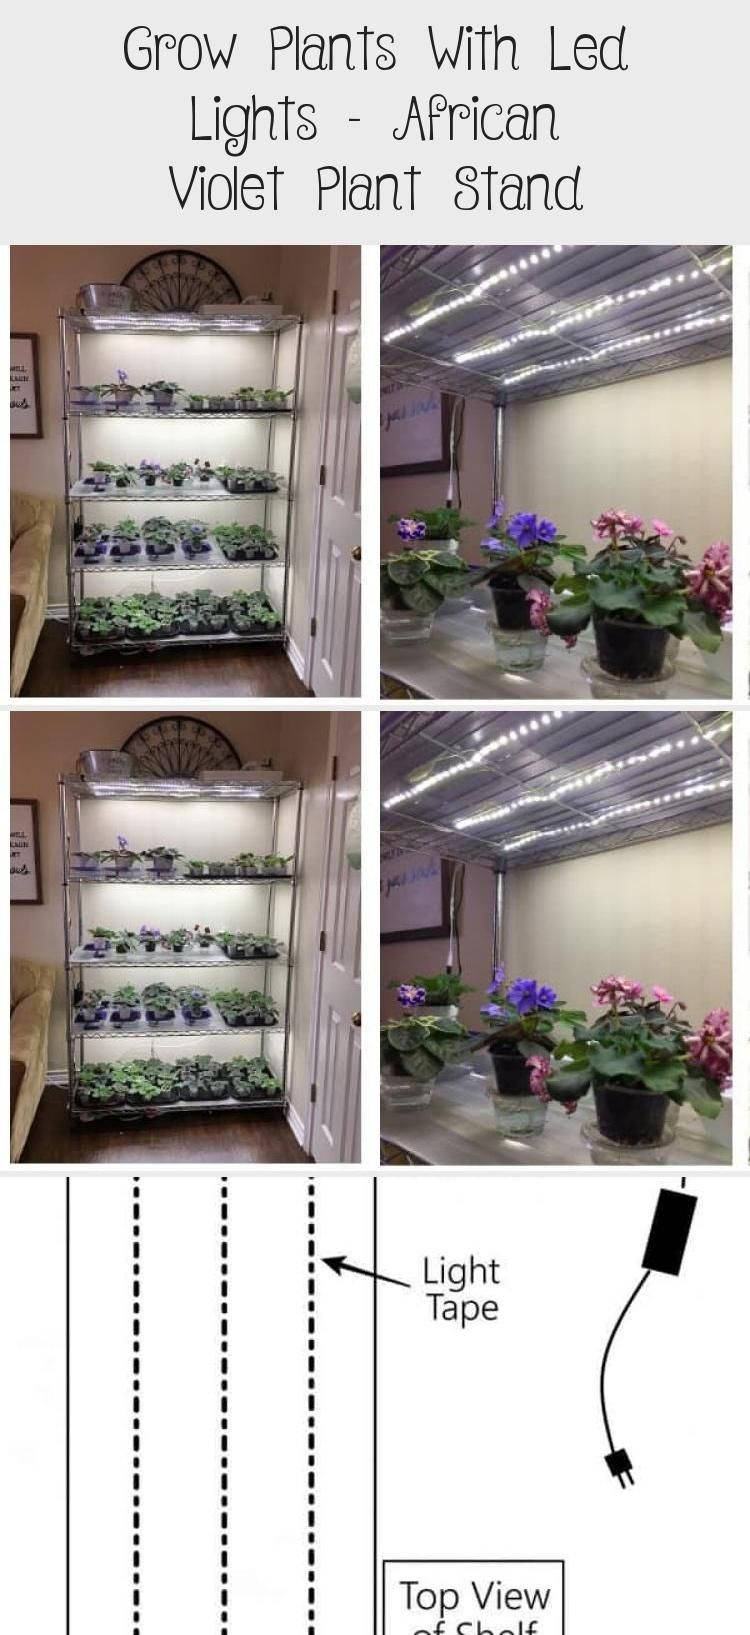 Grow Plants With Led Lights - African Violet Plant Stand ...